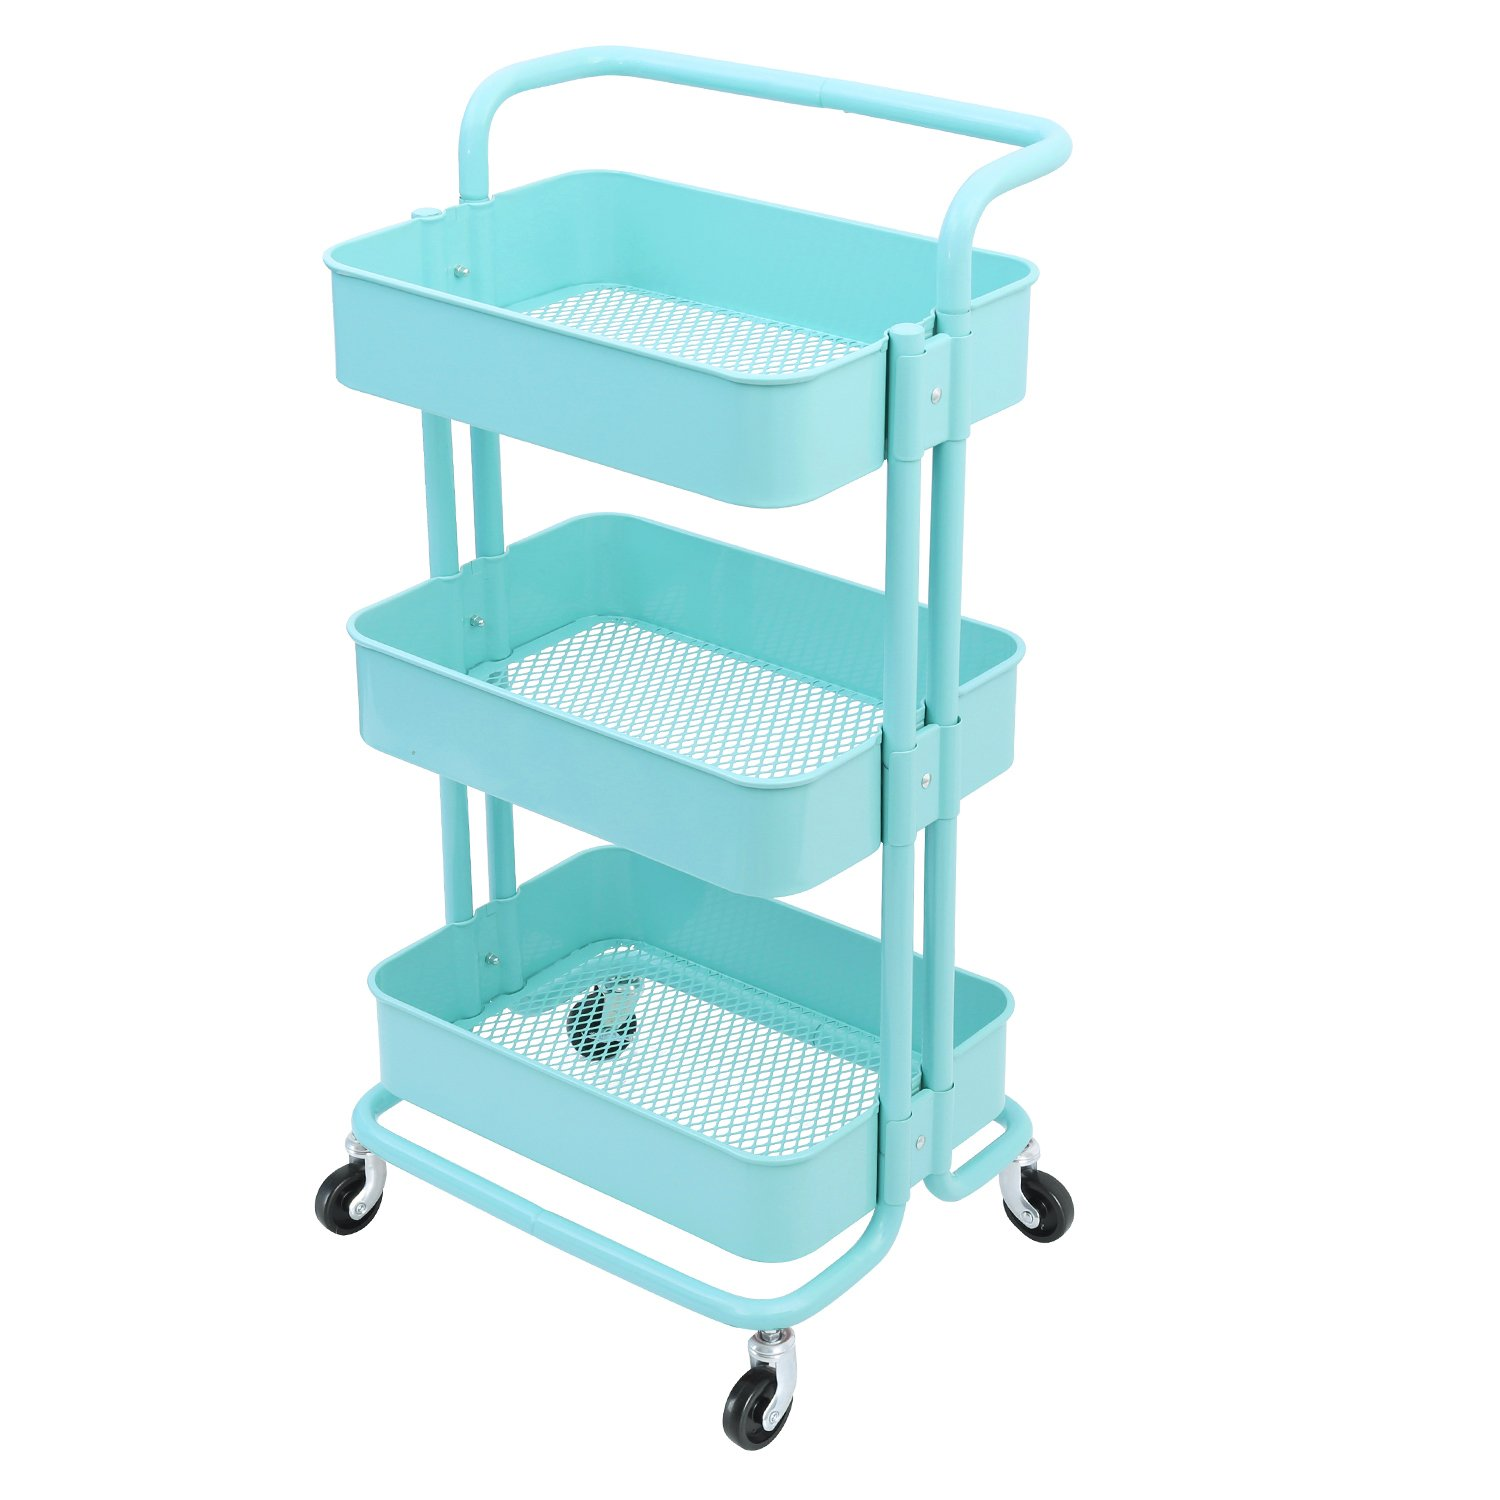 f887e6a2bedb 3-Tier Metal Mesh Storage Shelf Utility Rolling Cart with Removable Handle  and Plug, Indoor or Outdoor Storage Organizer, Turquoise